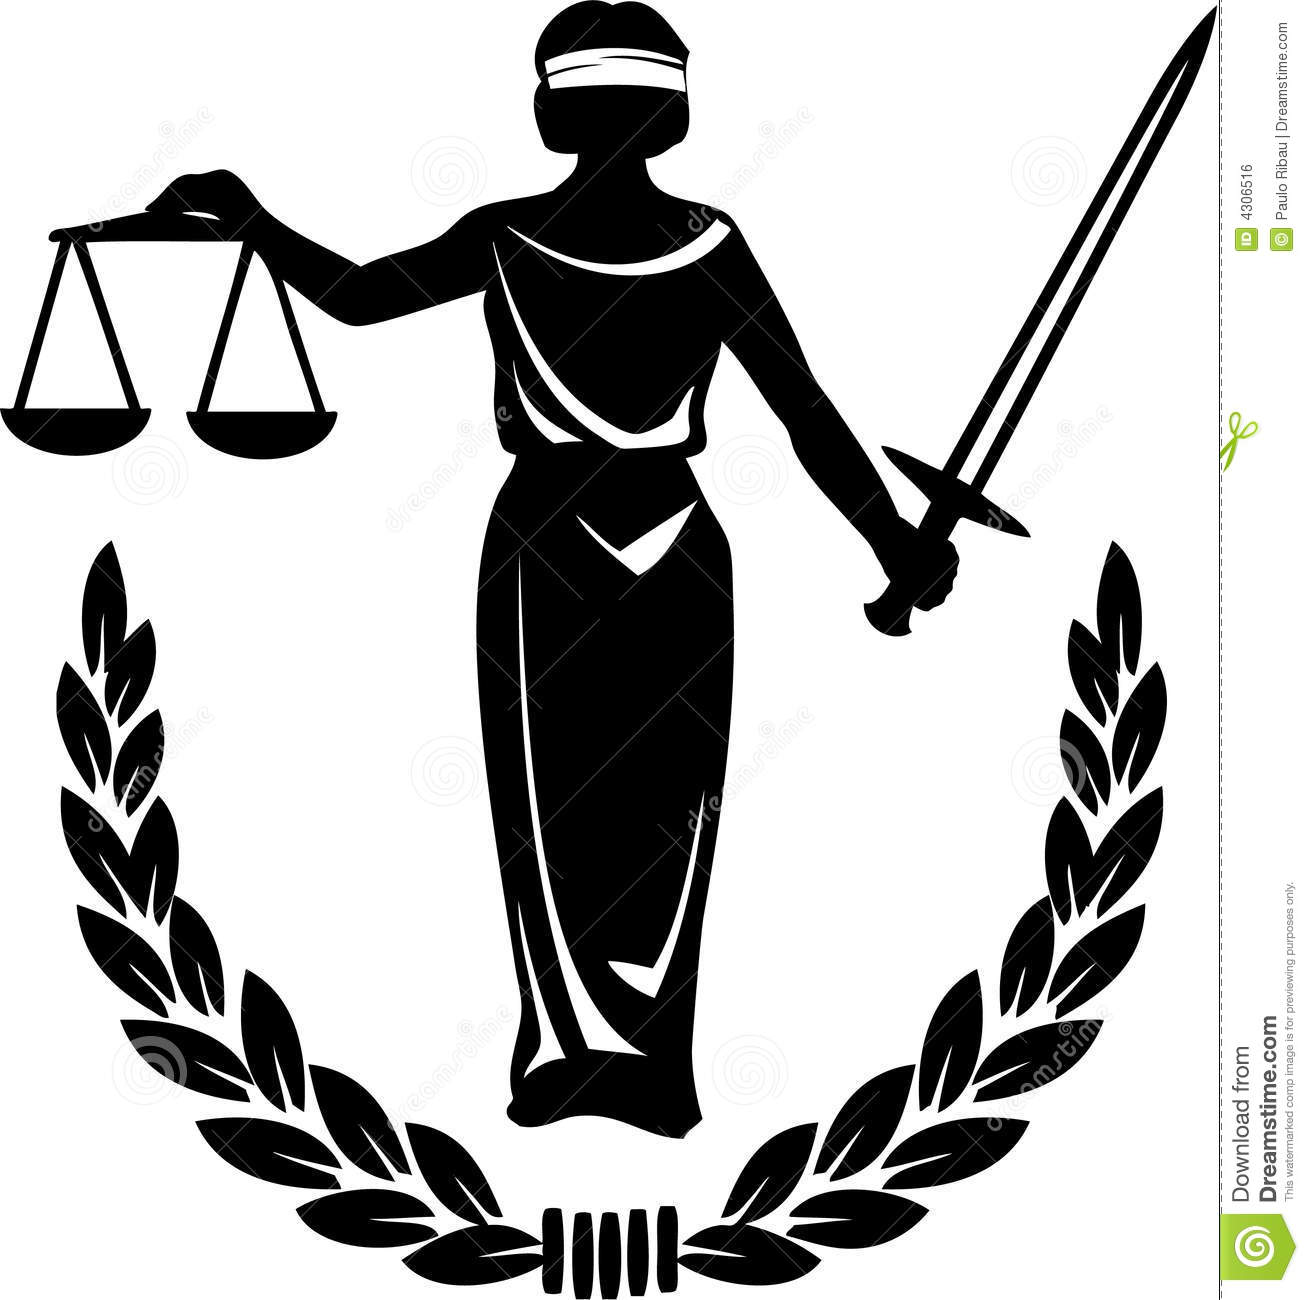 Image result for justice free image